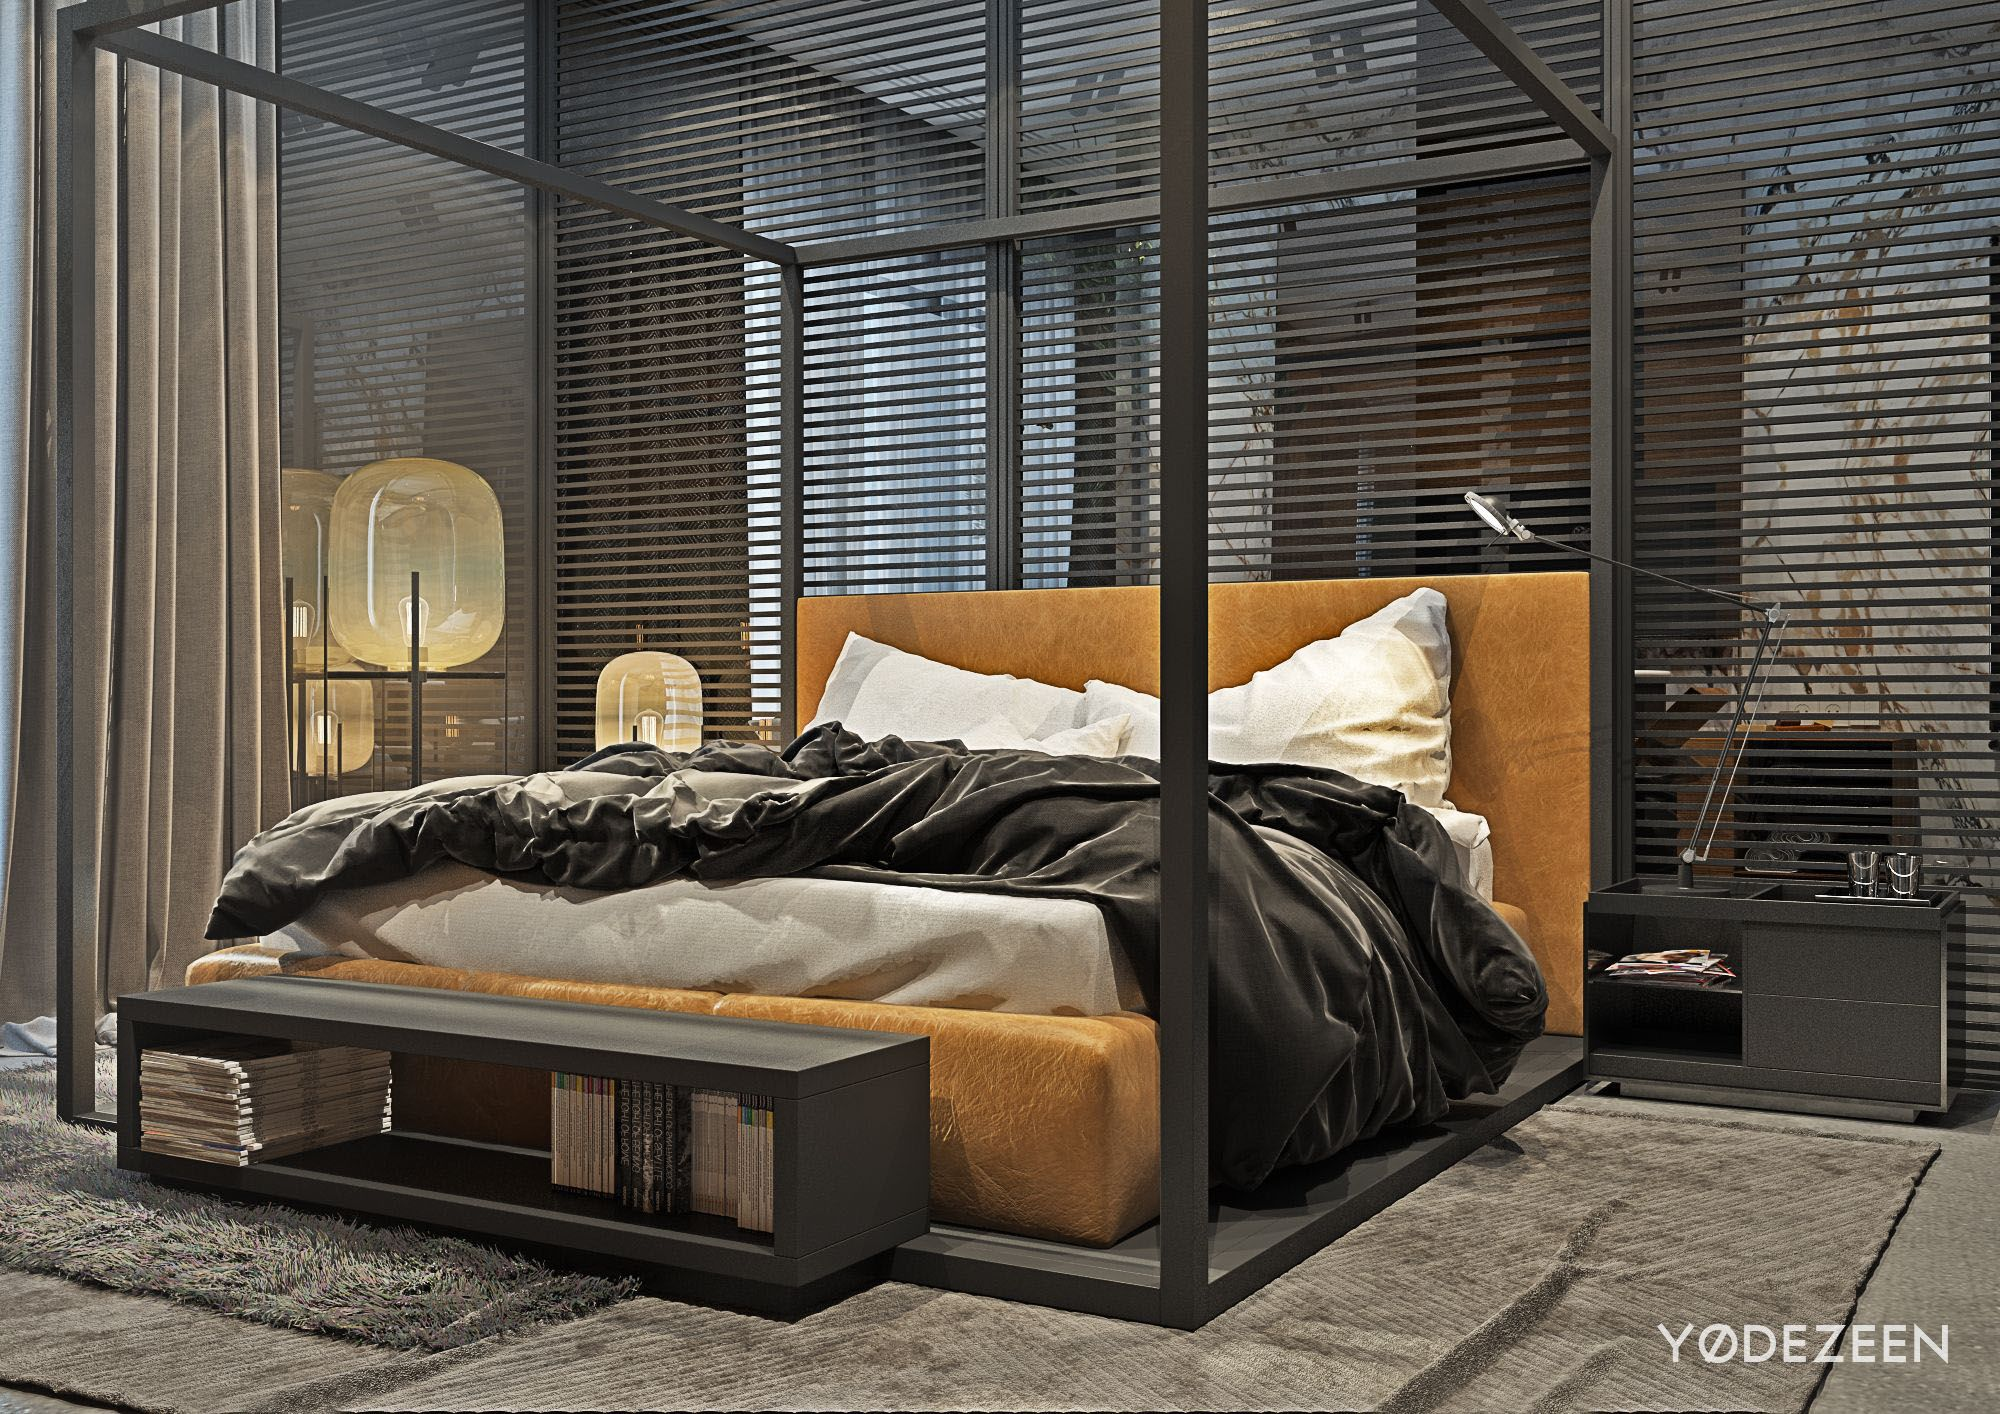 Charismatic apartment in Moscow on Behance